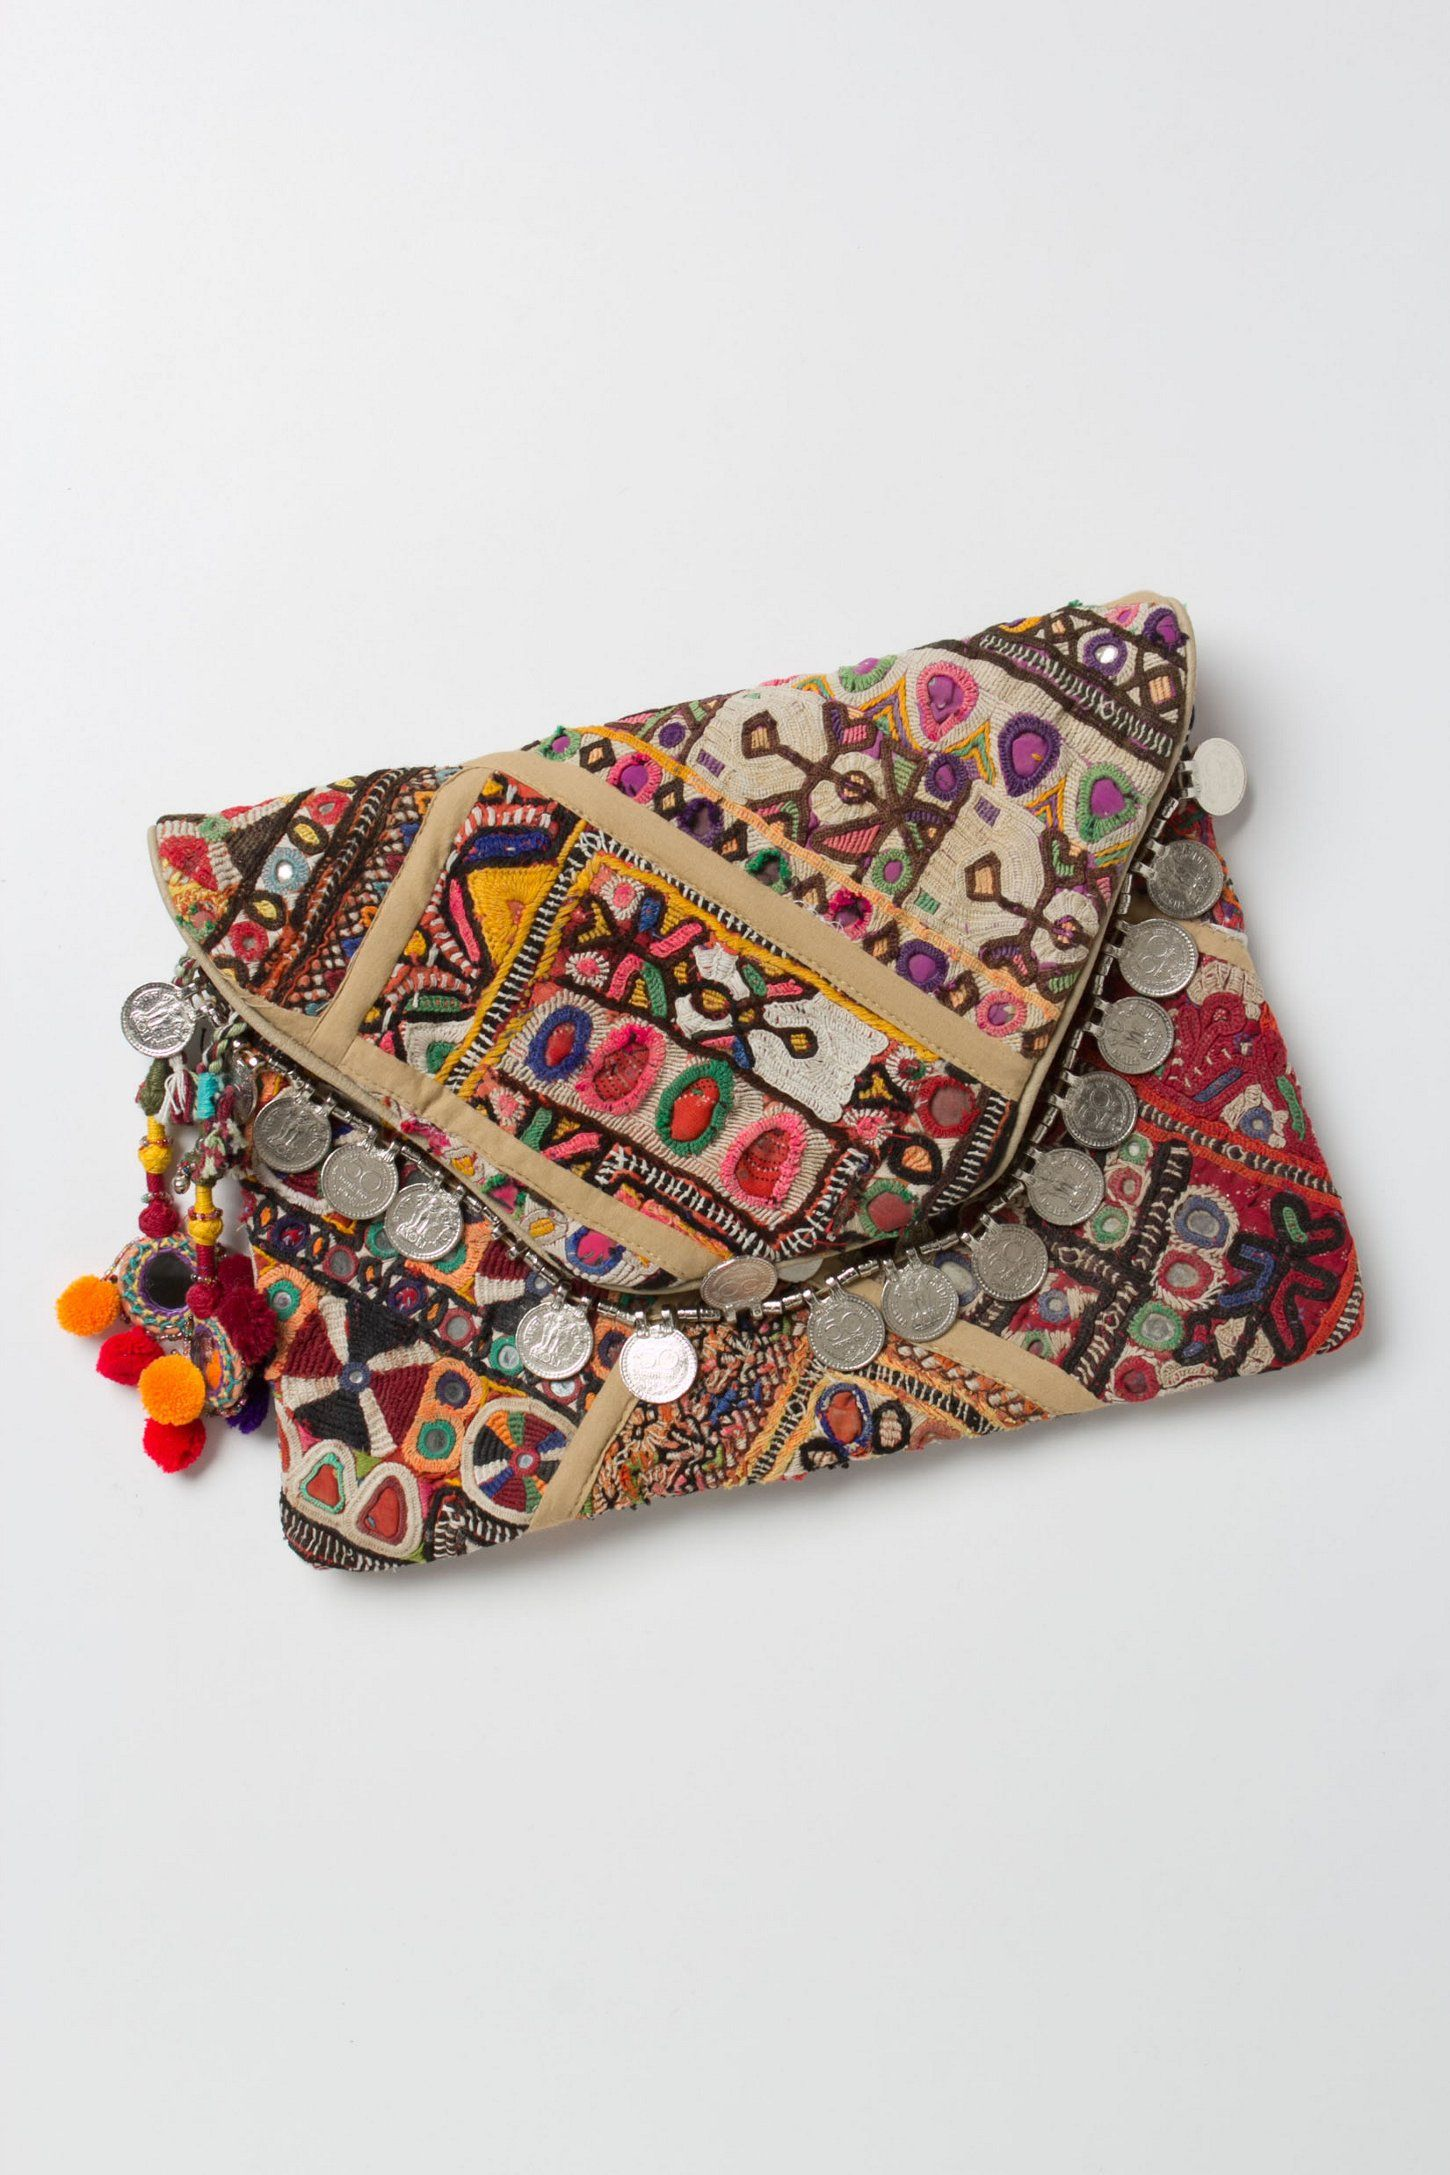 Adele  I ve seen many coin purses like these in my travels.  PranaClutch   Anthropologie b4dcb26bd0432